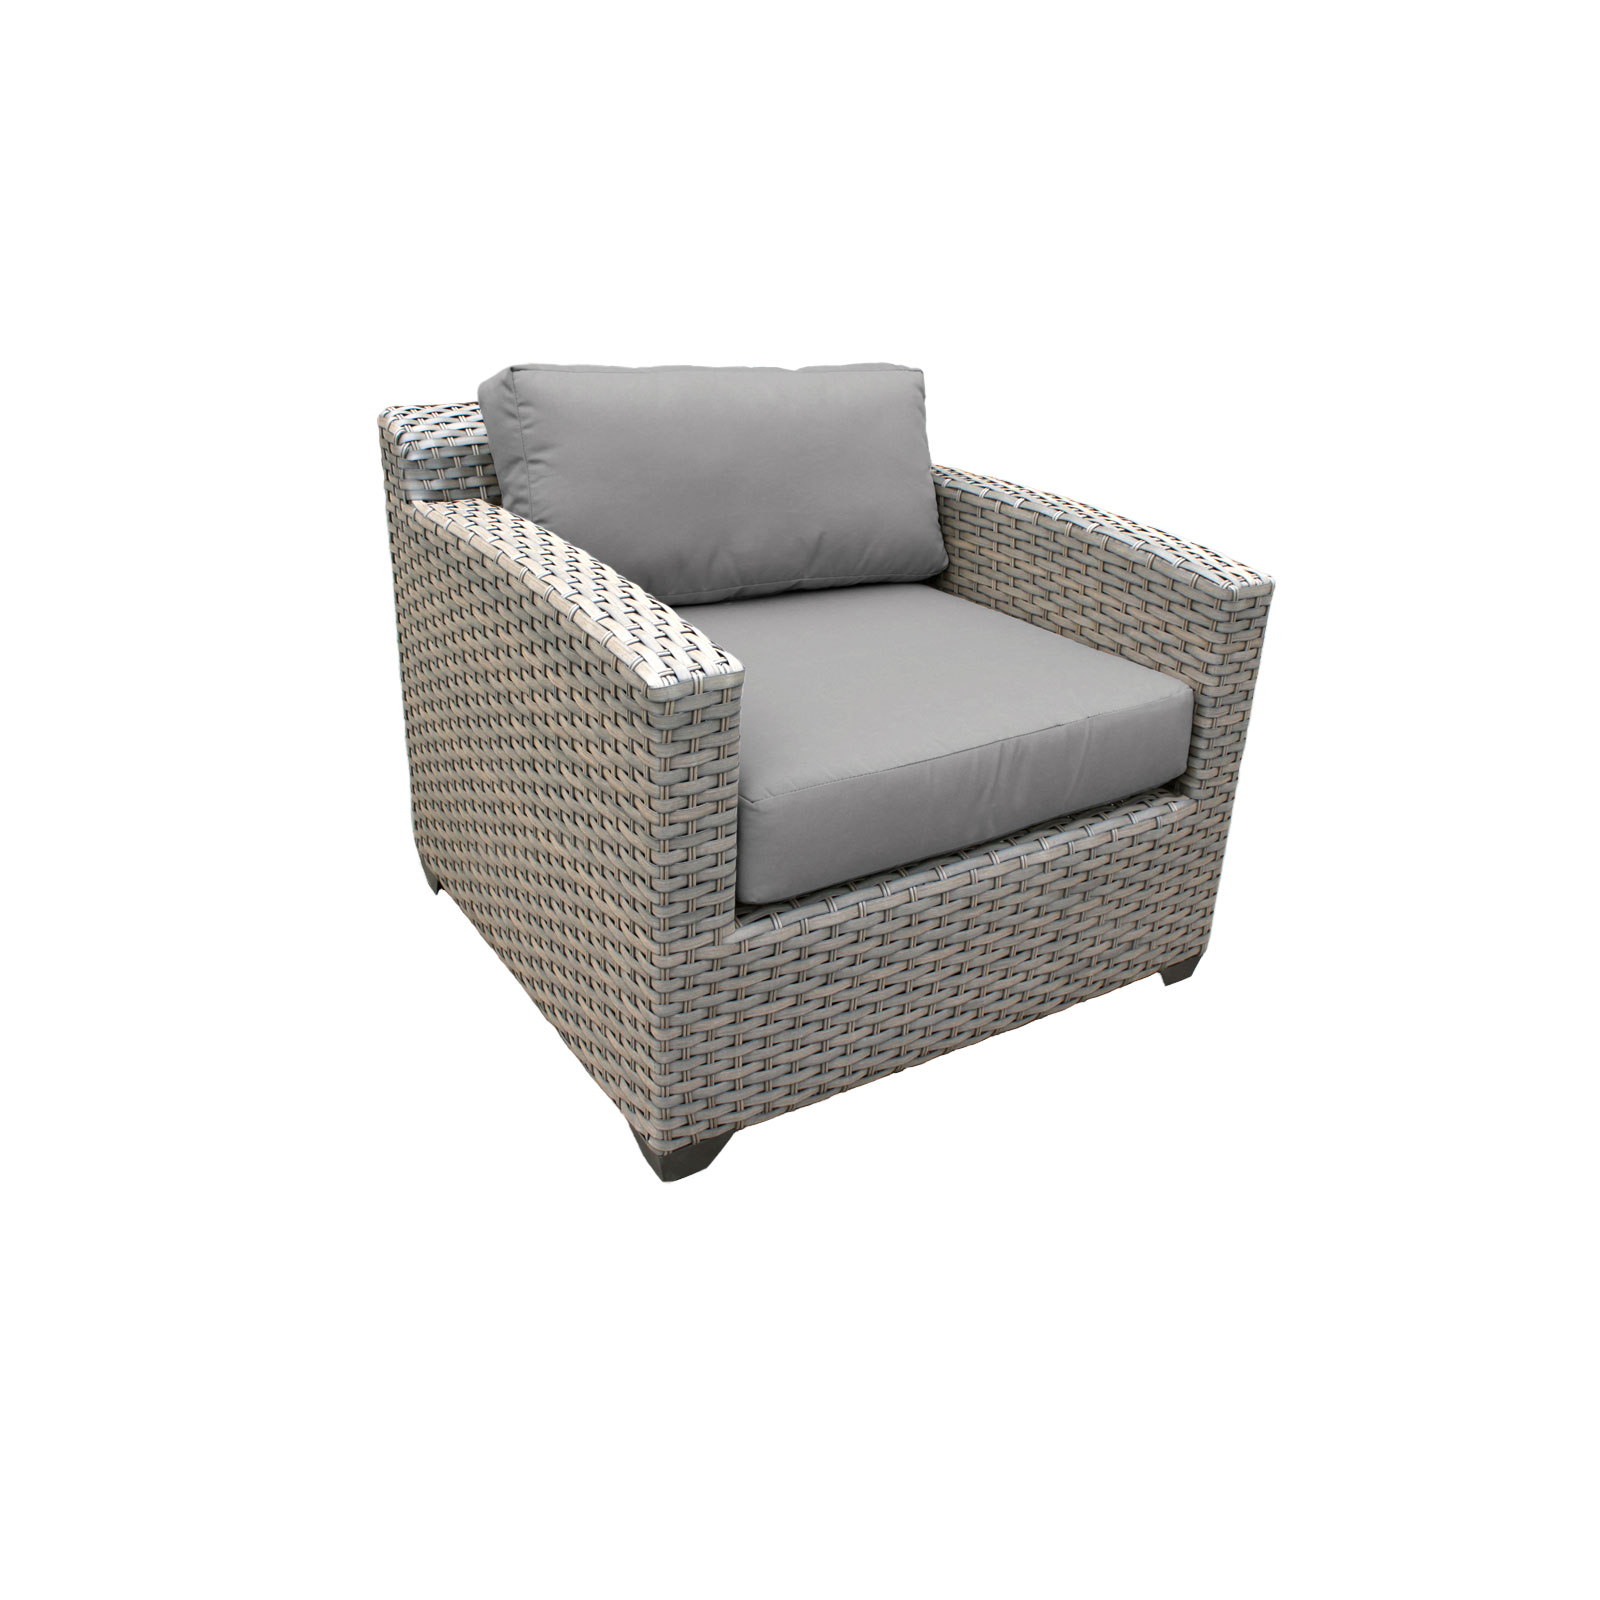 Catalina 8 Piece Outdoor Wicker Patio Furniture Set 08c Walmart